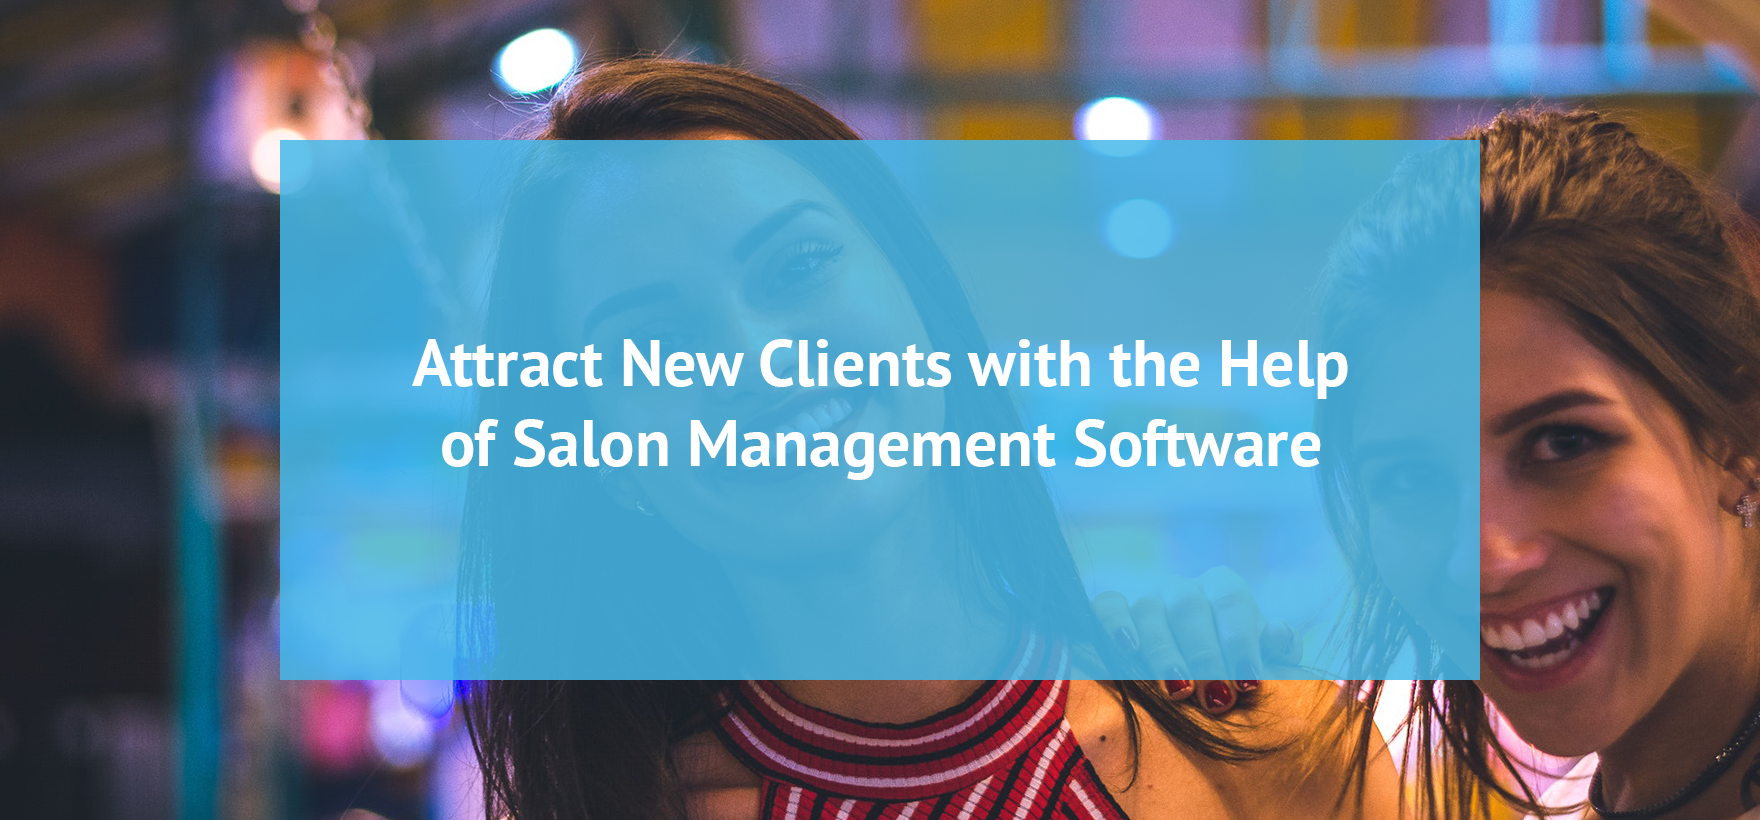 Attract New Clients with the Help of Salon Management Software